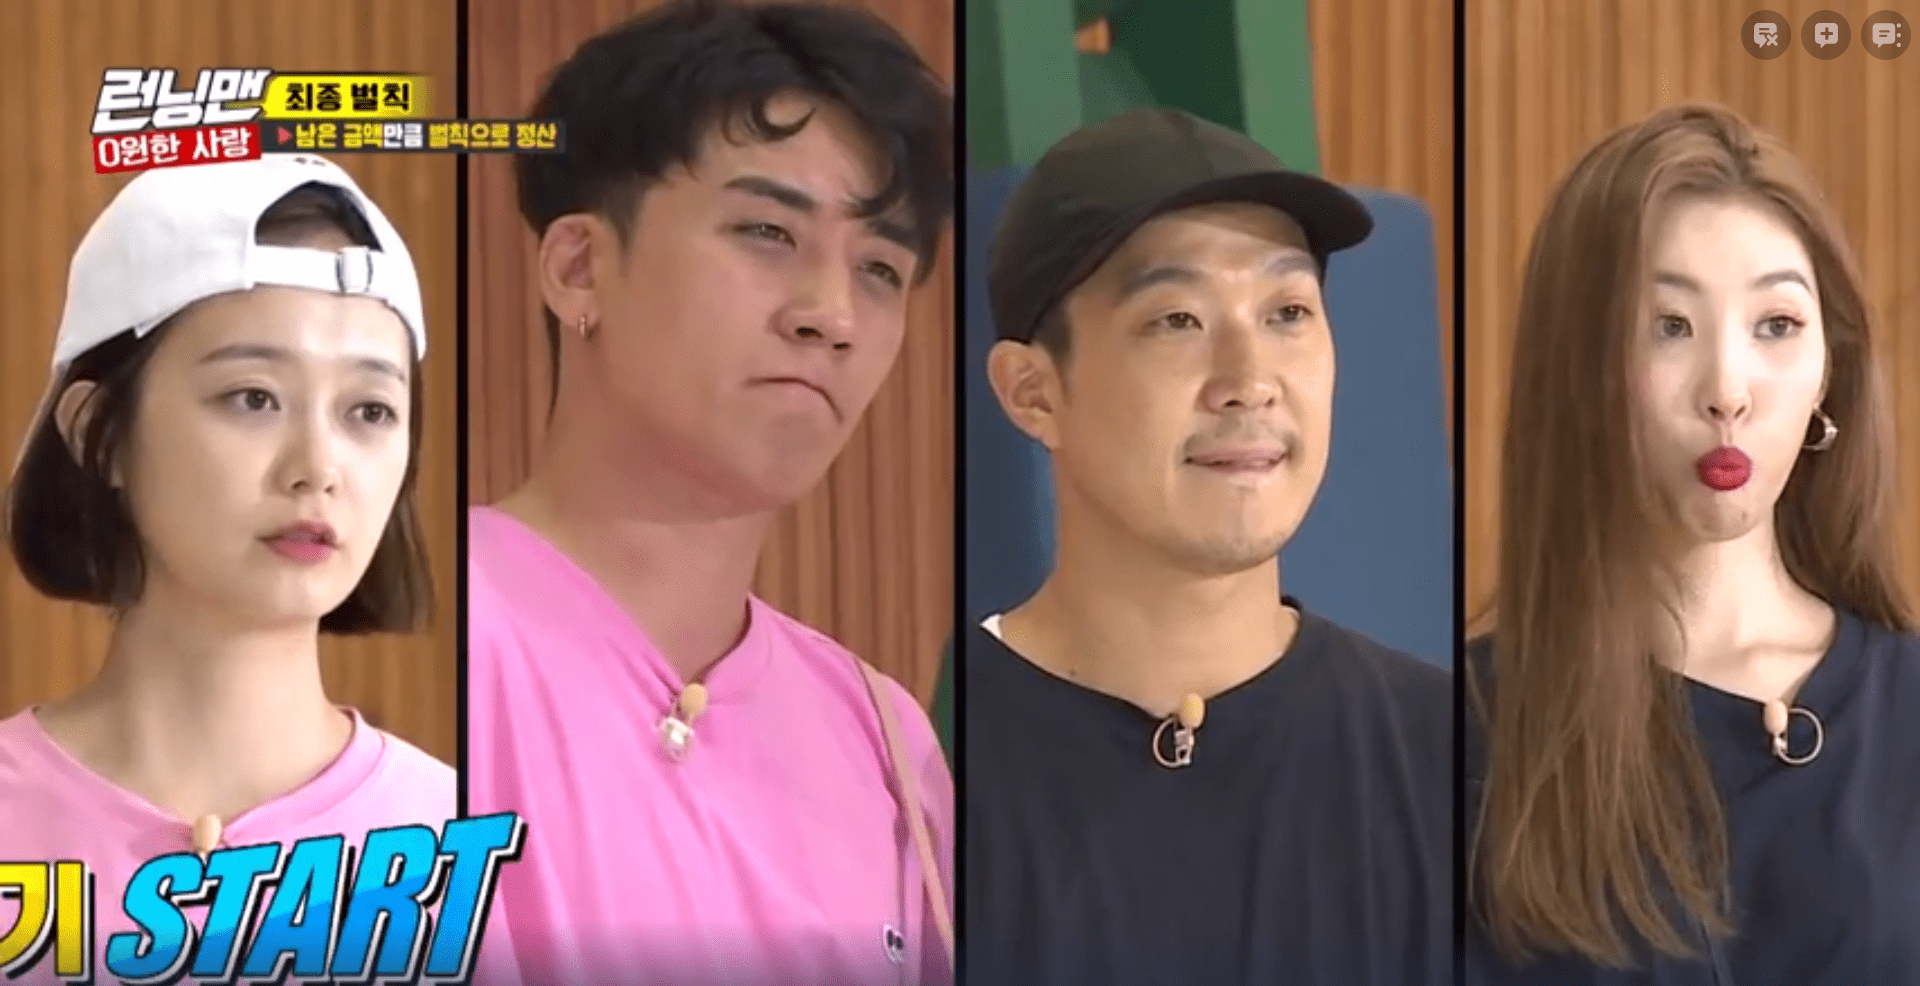 """Running Man"" Attains High Ratings With Hilarious, Star-Studded Episode"